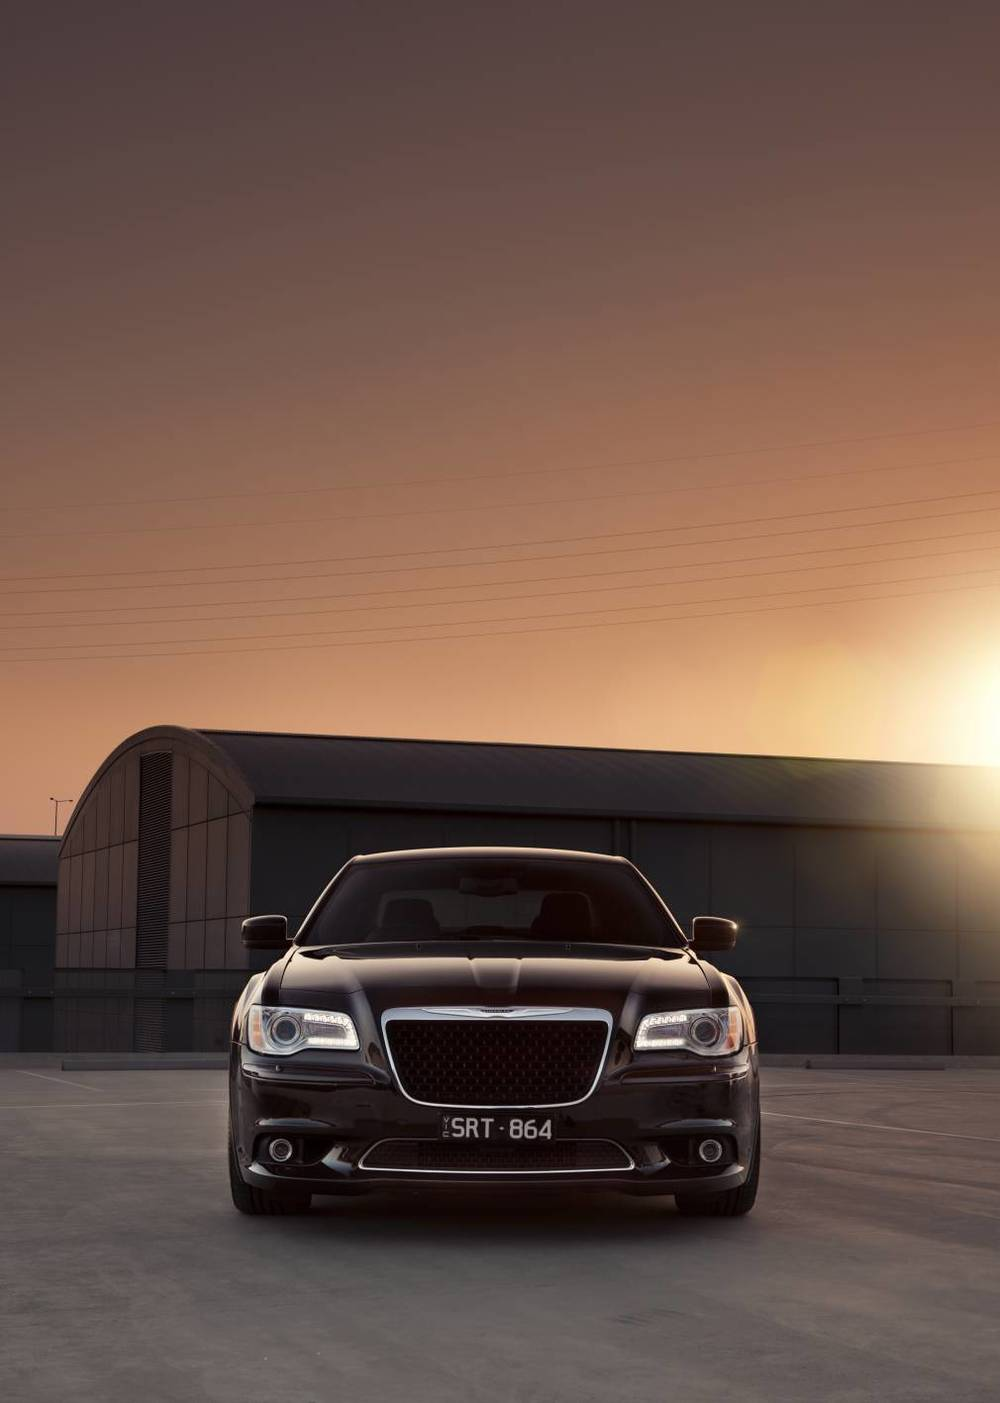 2014 Chrysler 300 SRT8 Core front 3.jpg